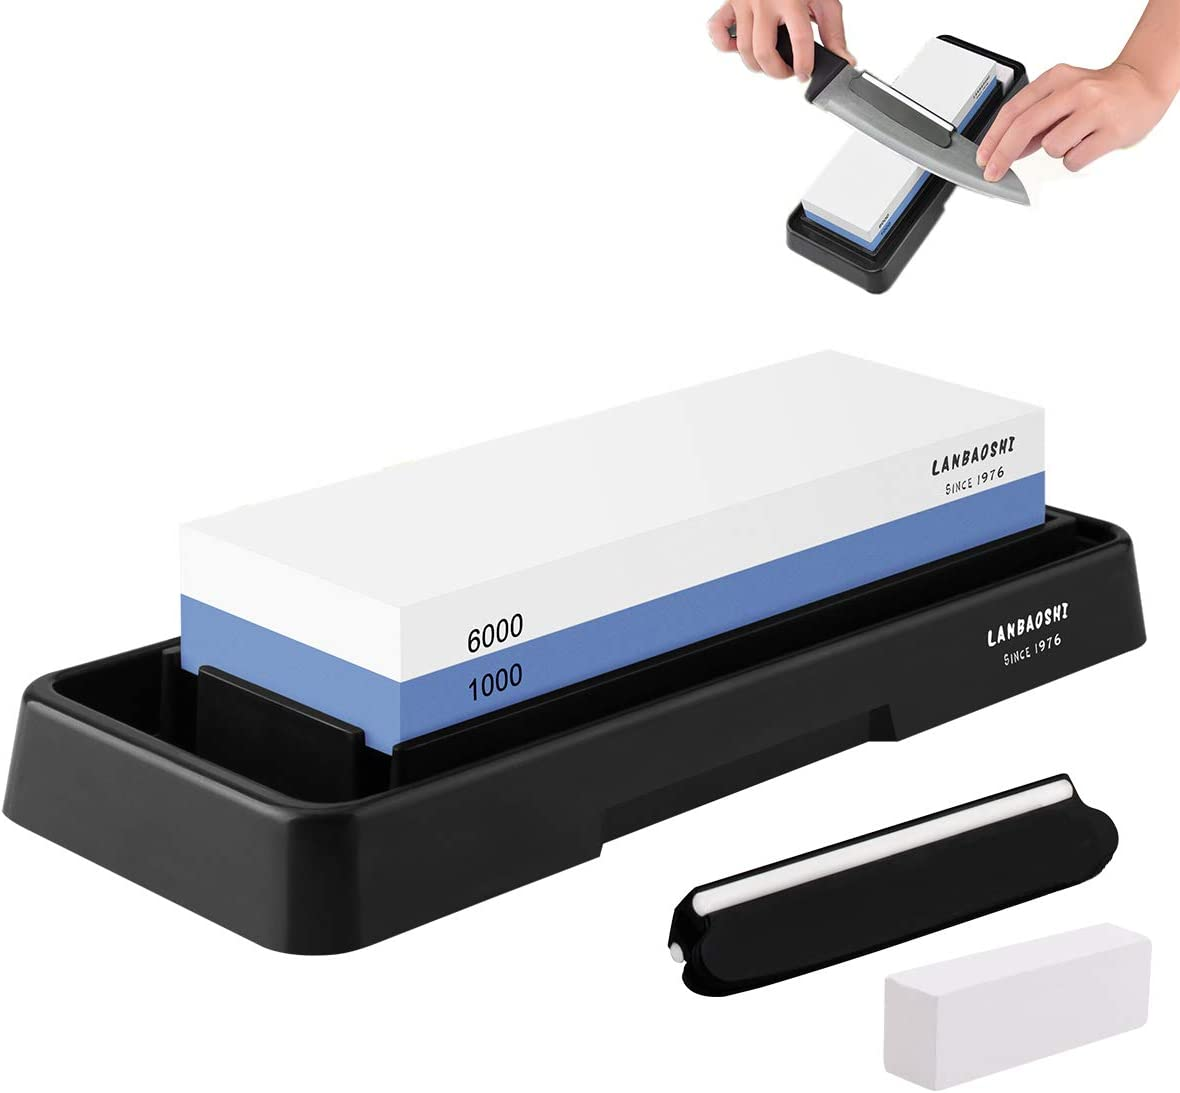 Knife Sharpening Stone Set , Whetstone Dual Sided 1000/6000 Grit Waterstone with Angle Guide Non Slip Rubber Base Holder, Knife Sharpeners Tool Kit for Kitchen Hunting (Blue + black): Kitchen & Dining